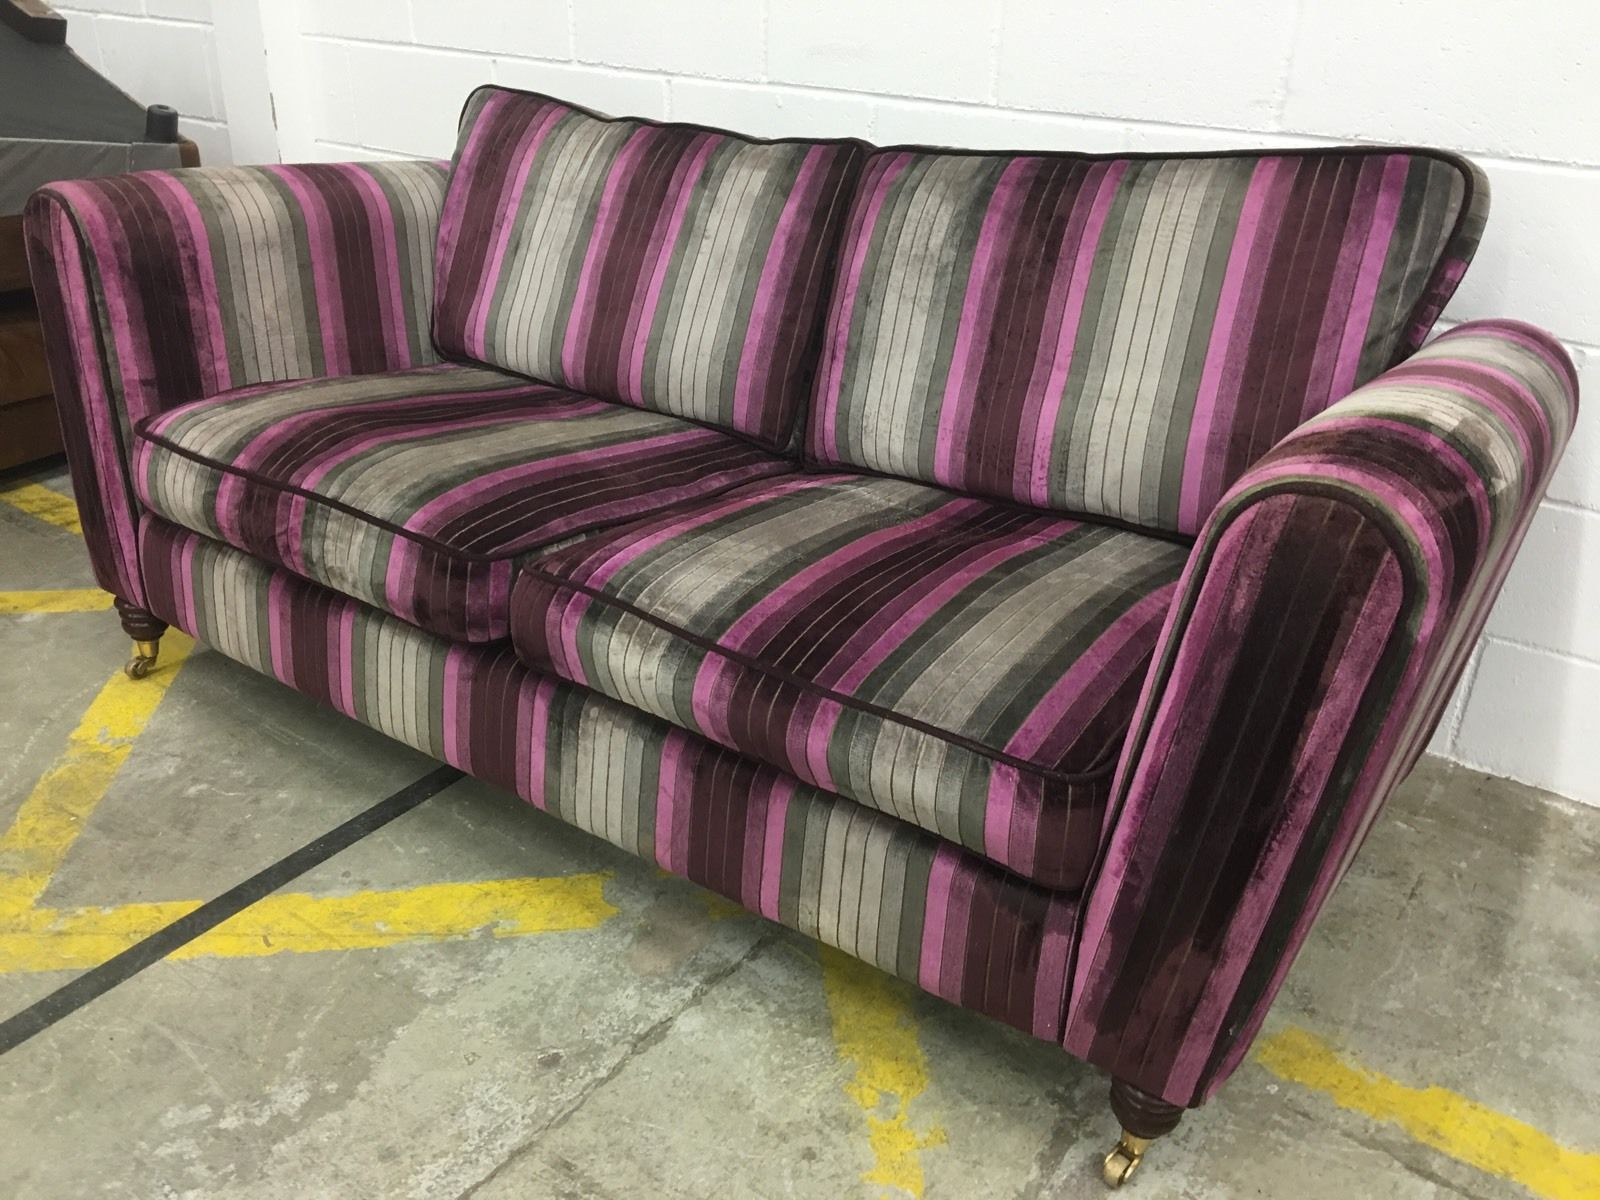 Warm Purple Sofa to Complete Your Living Room Decor: Purple Sofa | Purple Velvet Sofa For Sale | Mini Couches For Sale